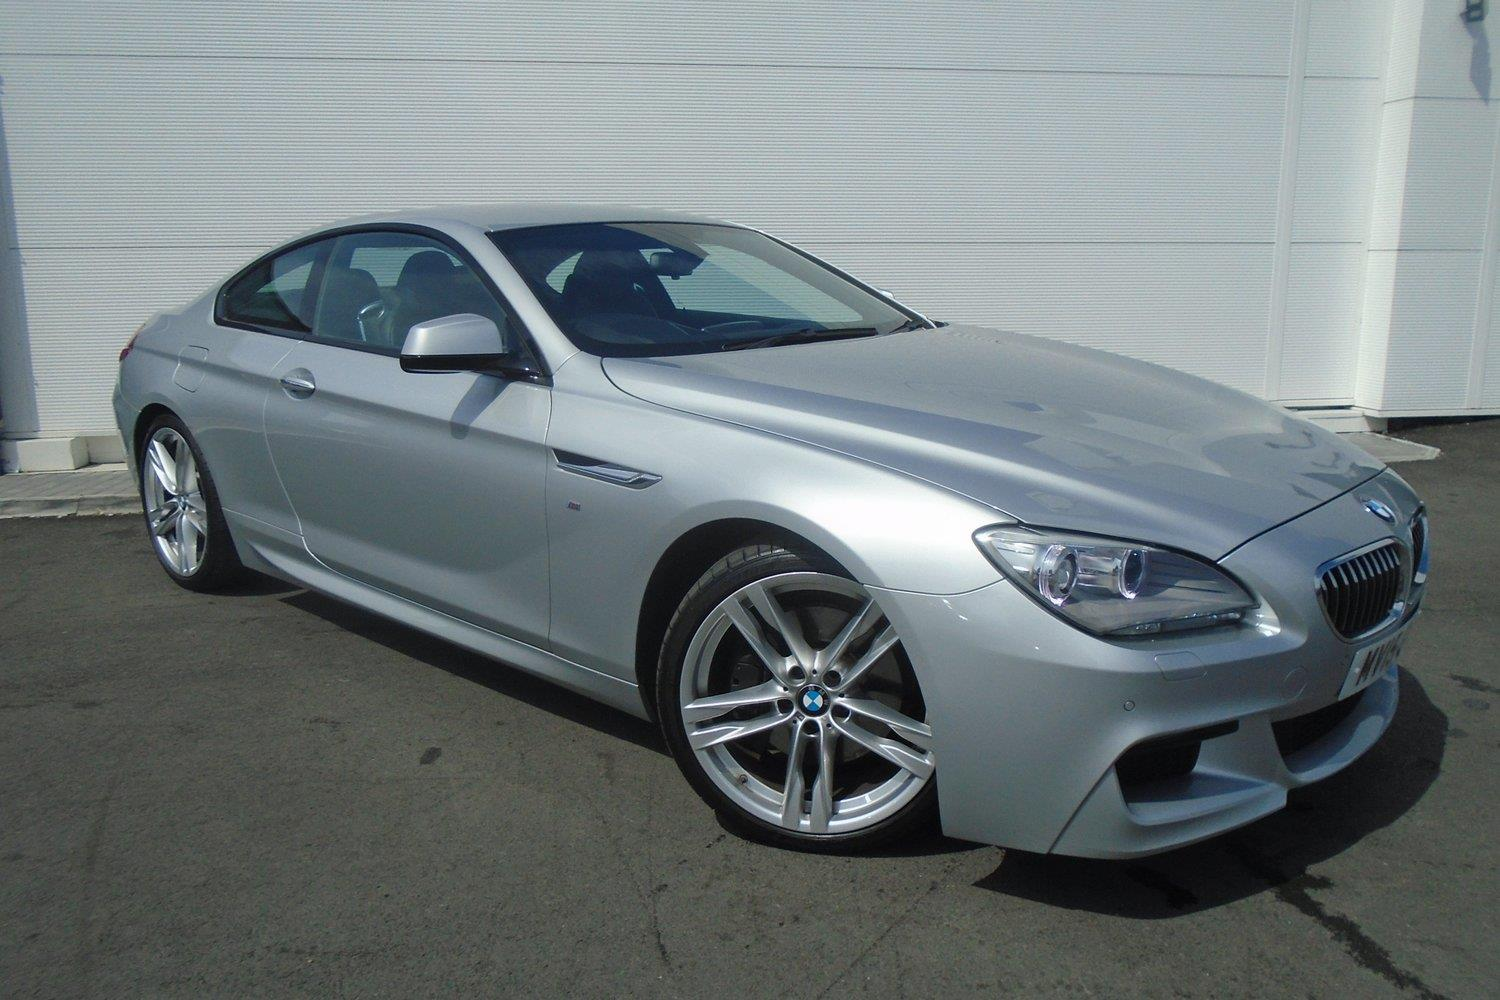 BMW 6 Series Coupé MV15GKO - Image 4